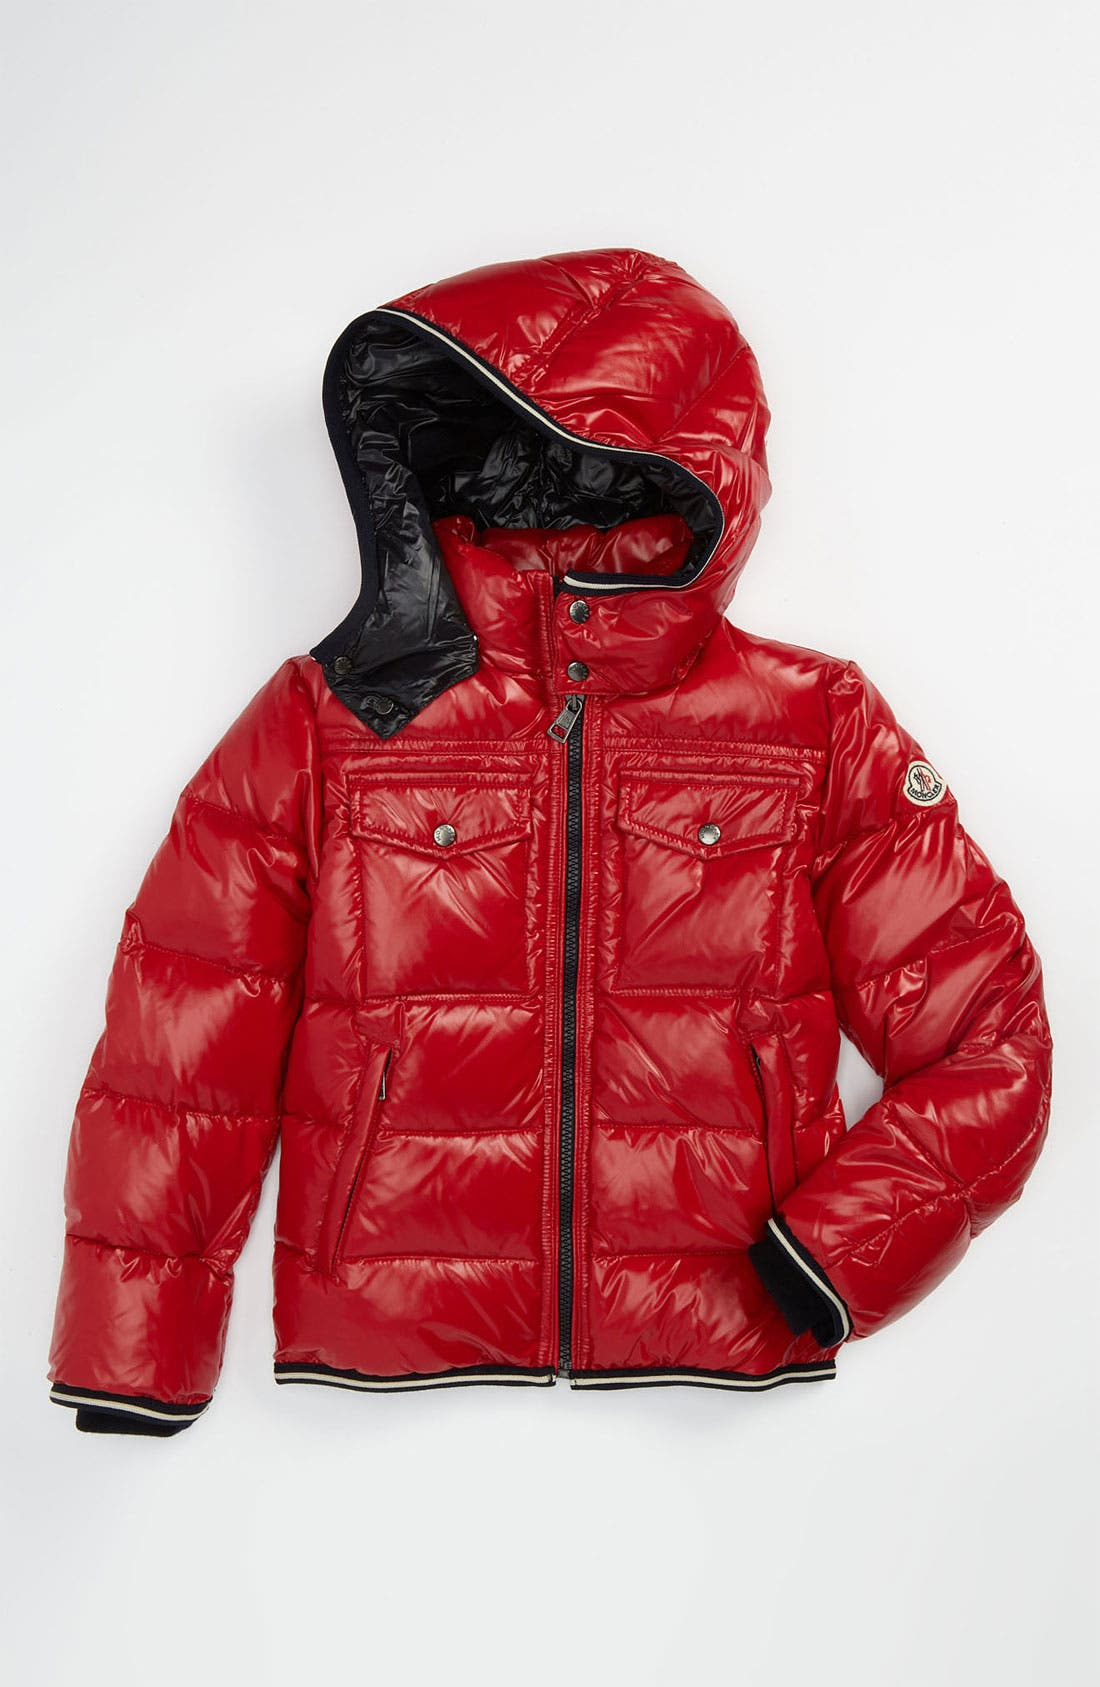 Alternate Image 1 Selected - Moncler Puffer Jacket (Little Boys)